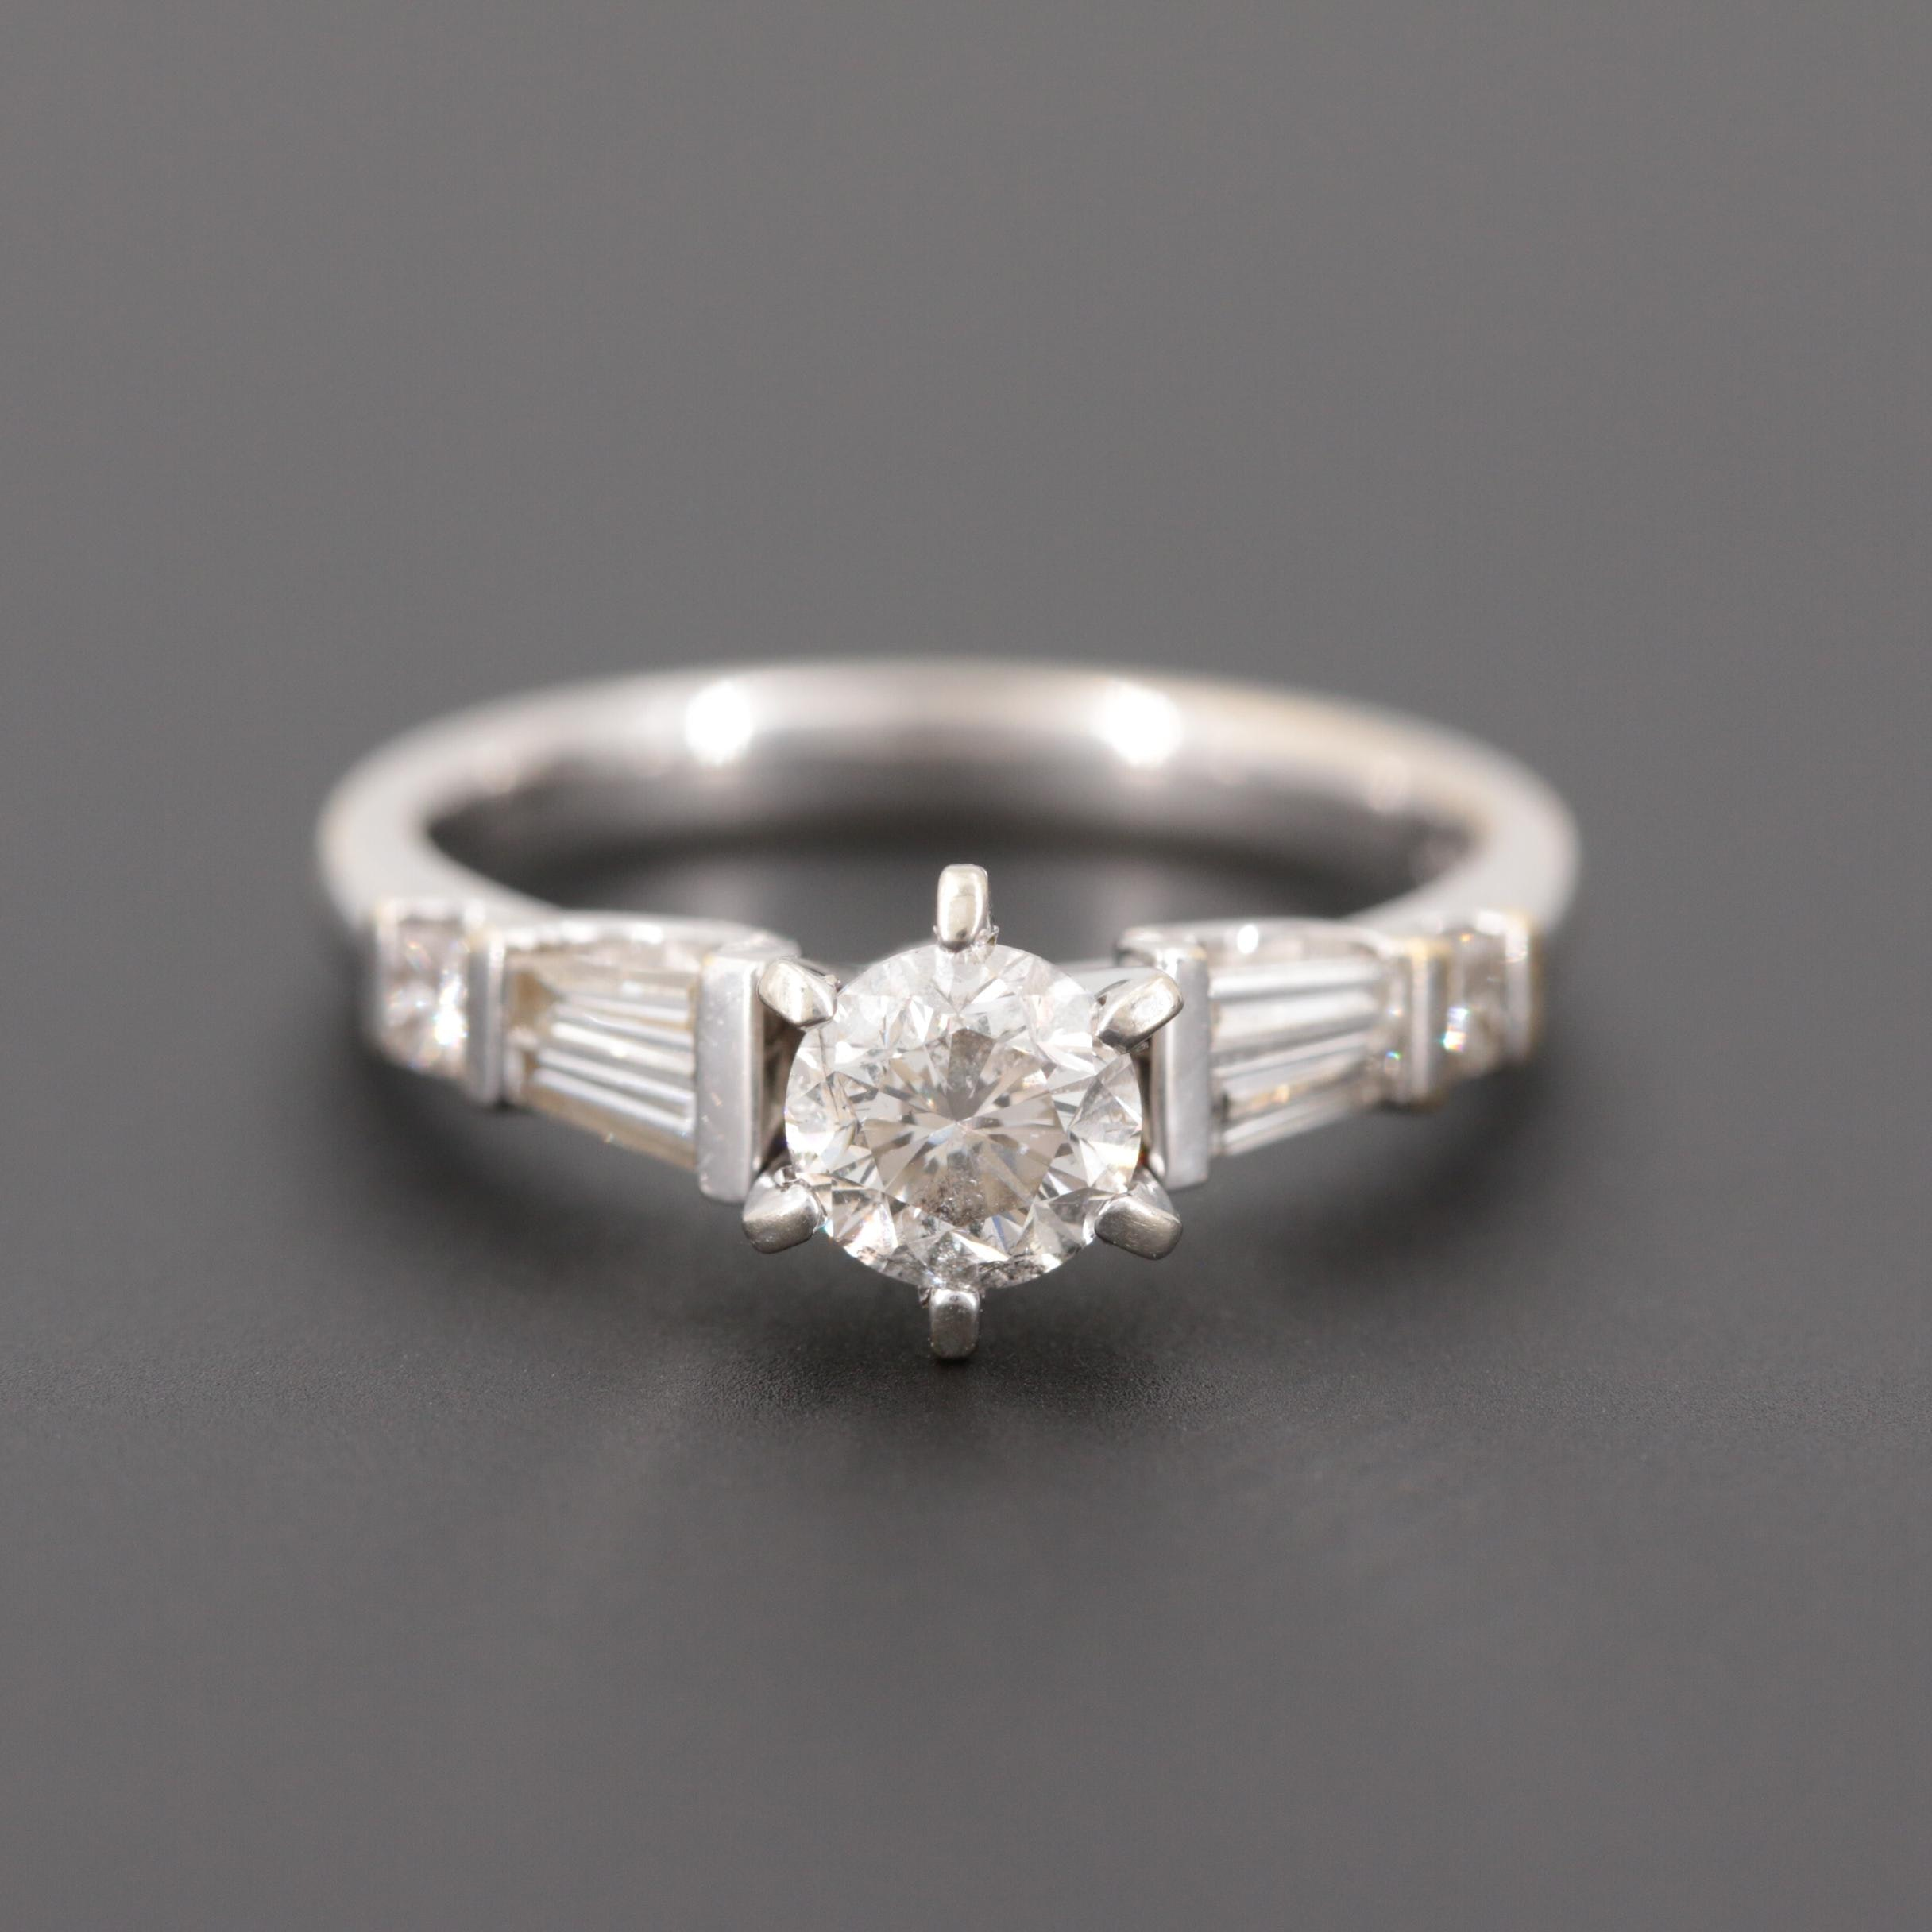 18K White Gold 1.08 CTW Diamond Ring